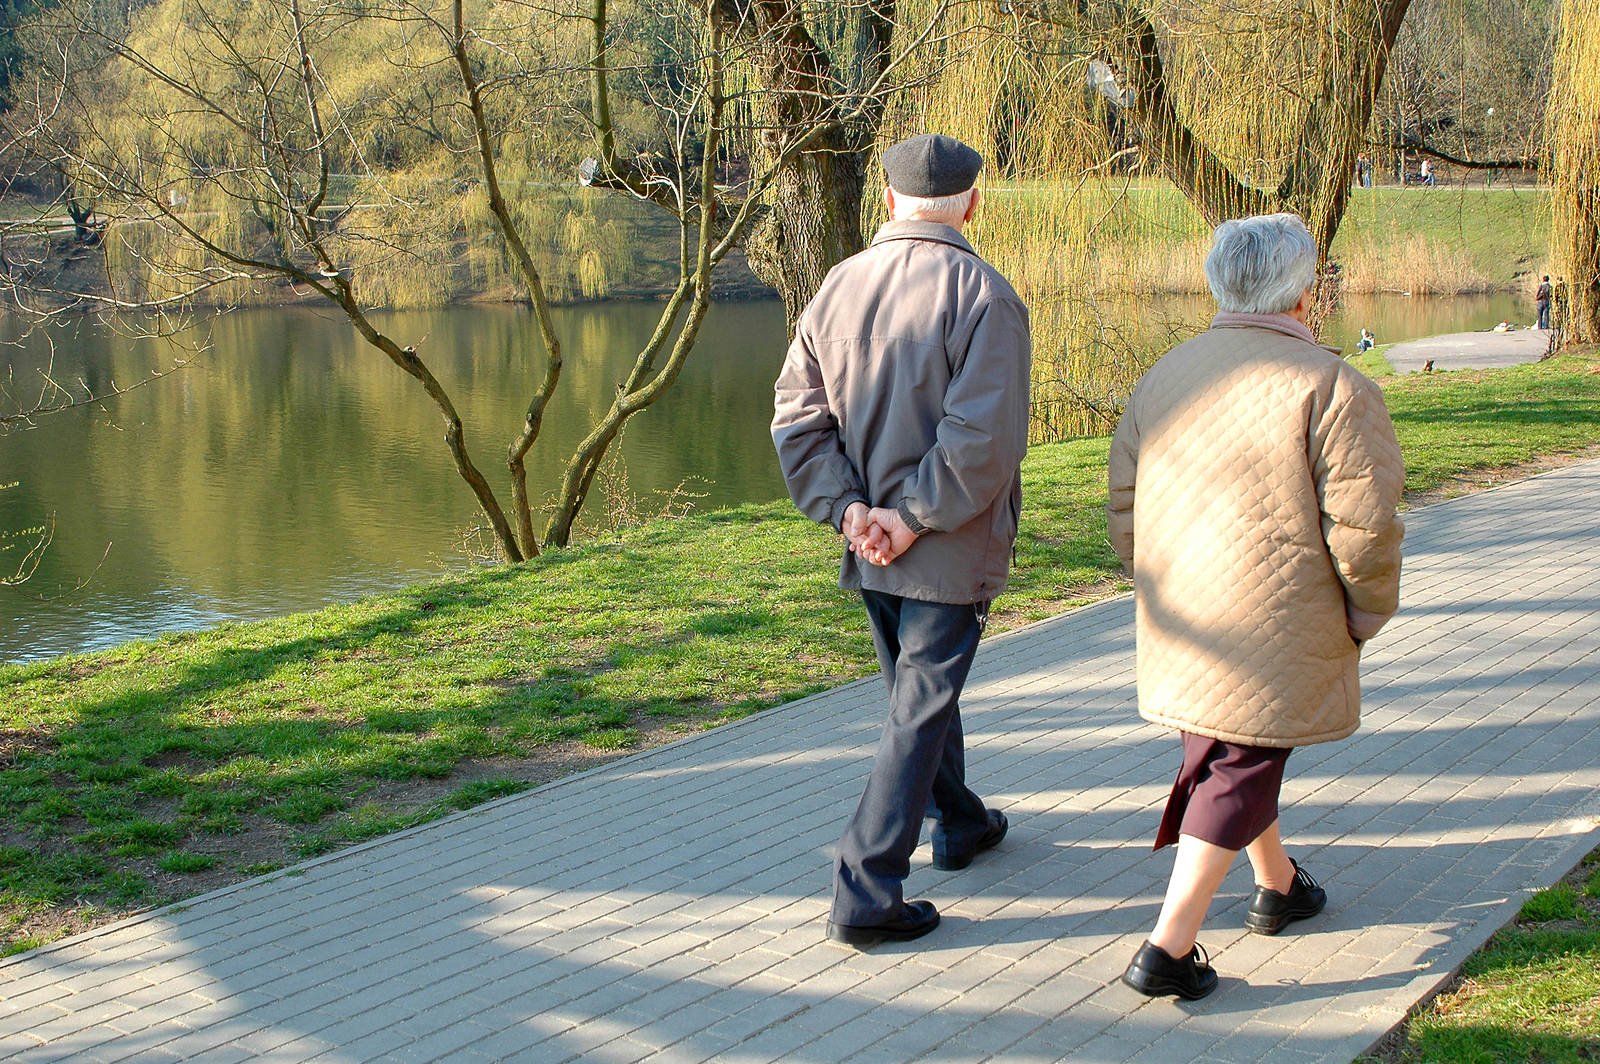 The Future for Seniors? It's all about Walkable Communities